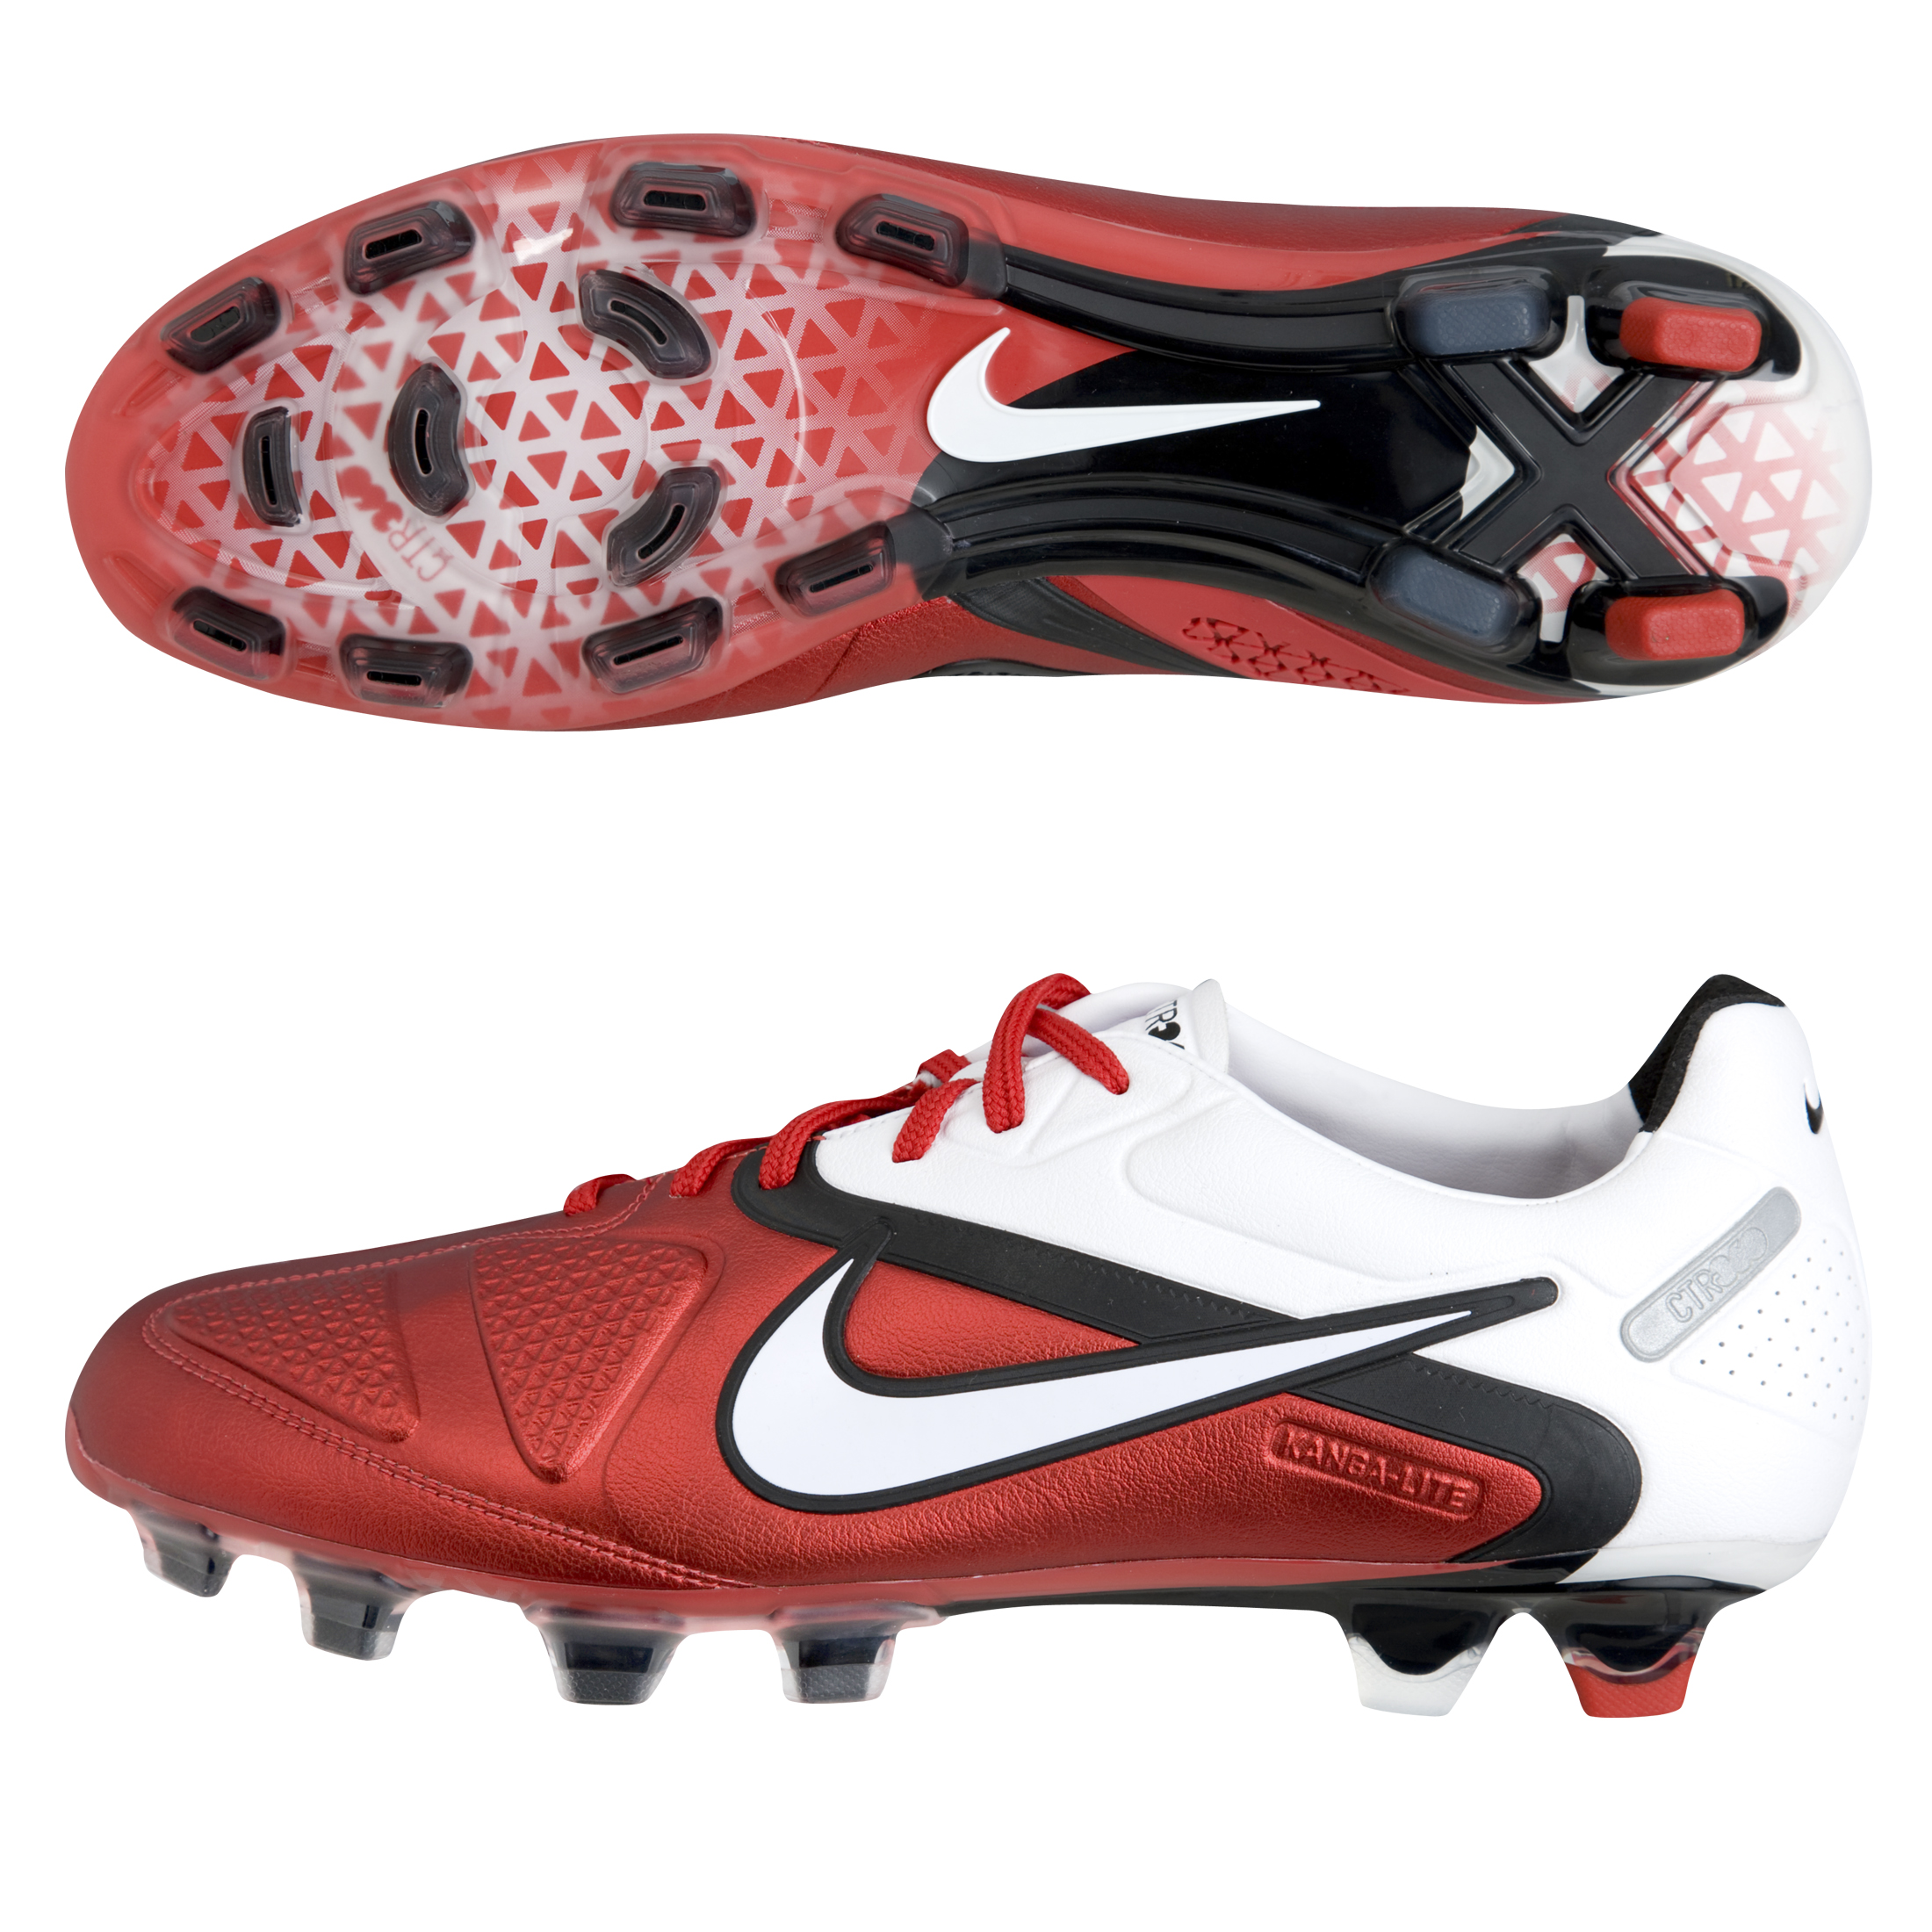 Nike CTR360 Maestri II Firm Ground Football Boots - Challenge Red/White/Black